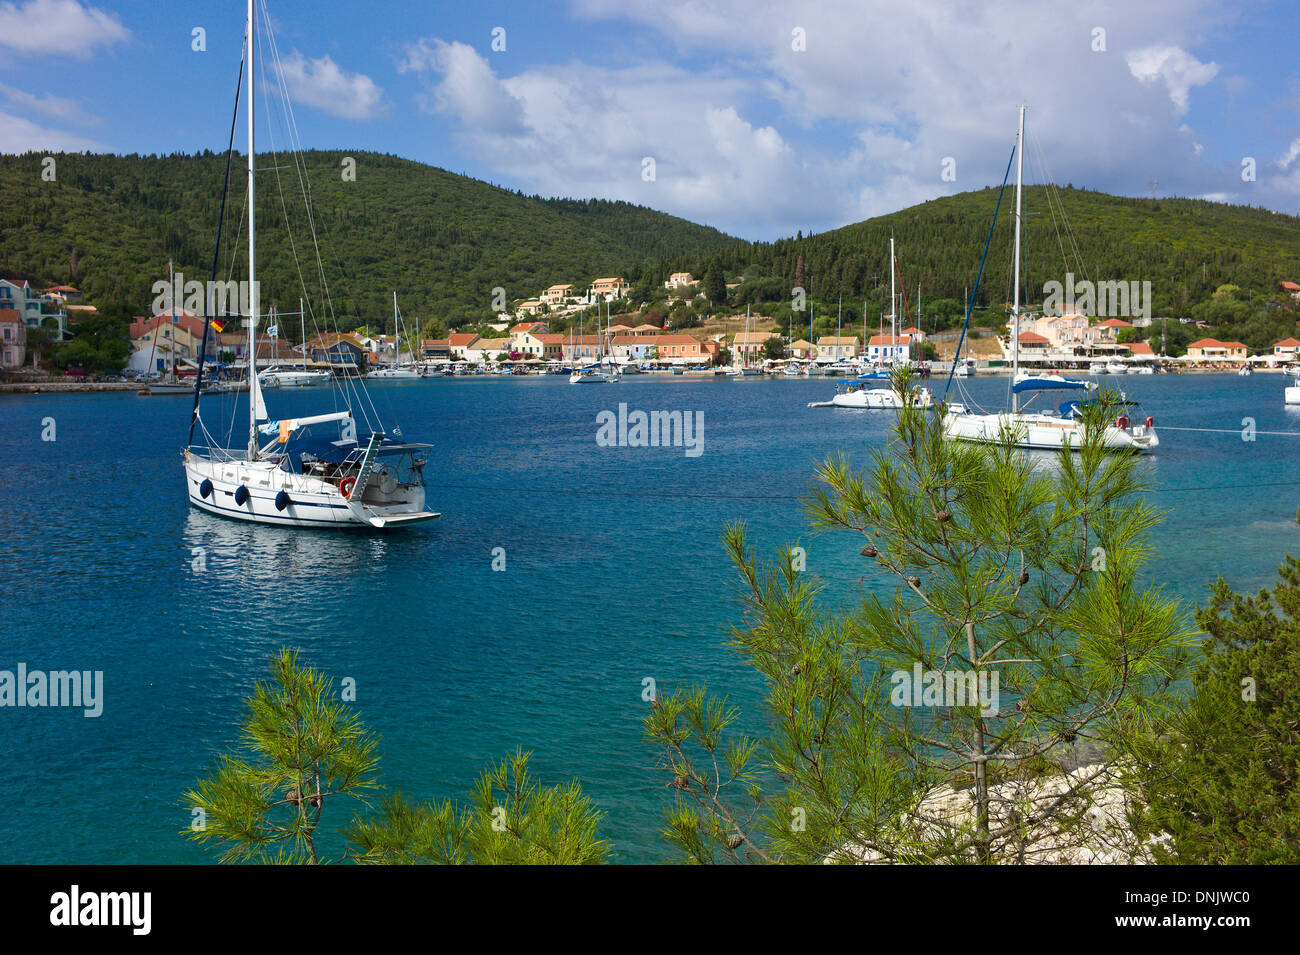 Yacths moored in Fiscardo harbour, Kefalonia, Greece - Stock Image